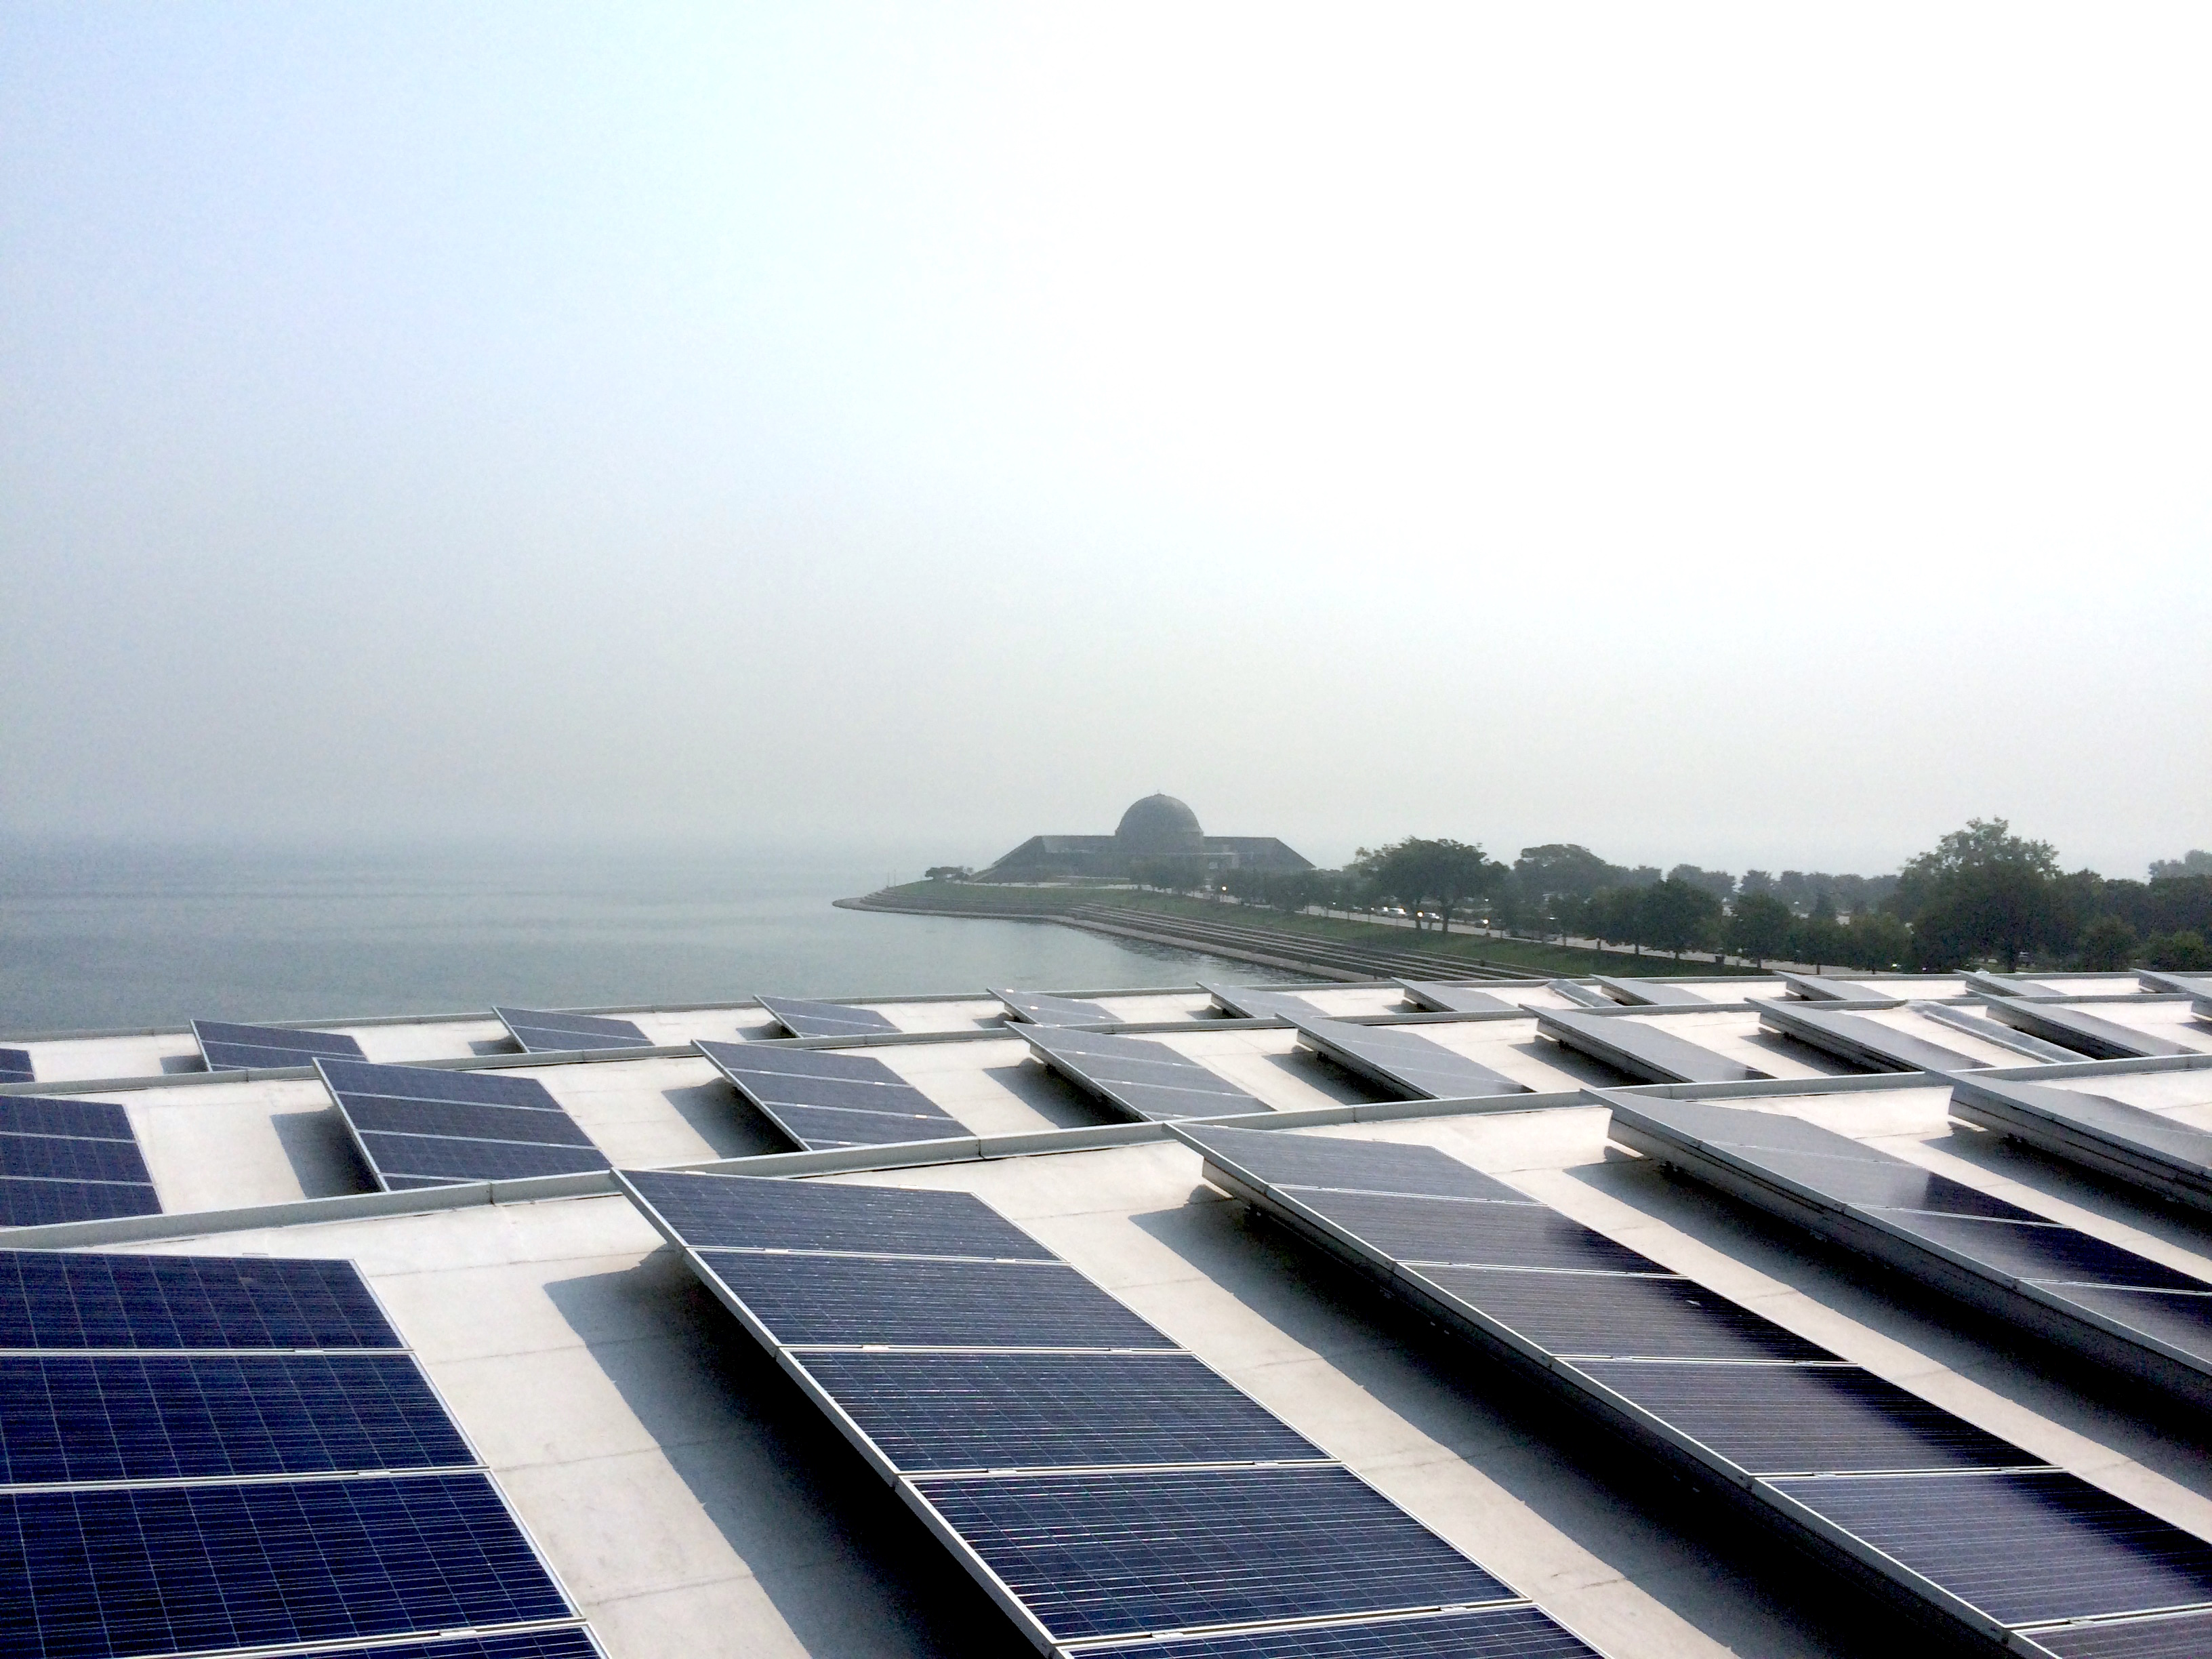 Solar panels on the roof of Shedd Aquarium, Chicago, Illinois